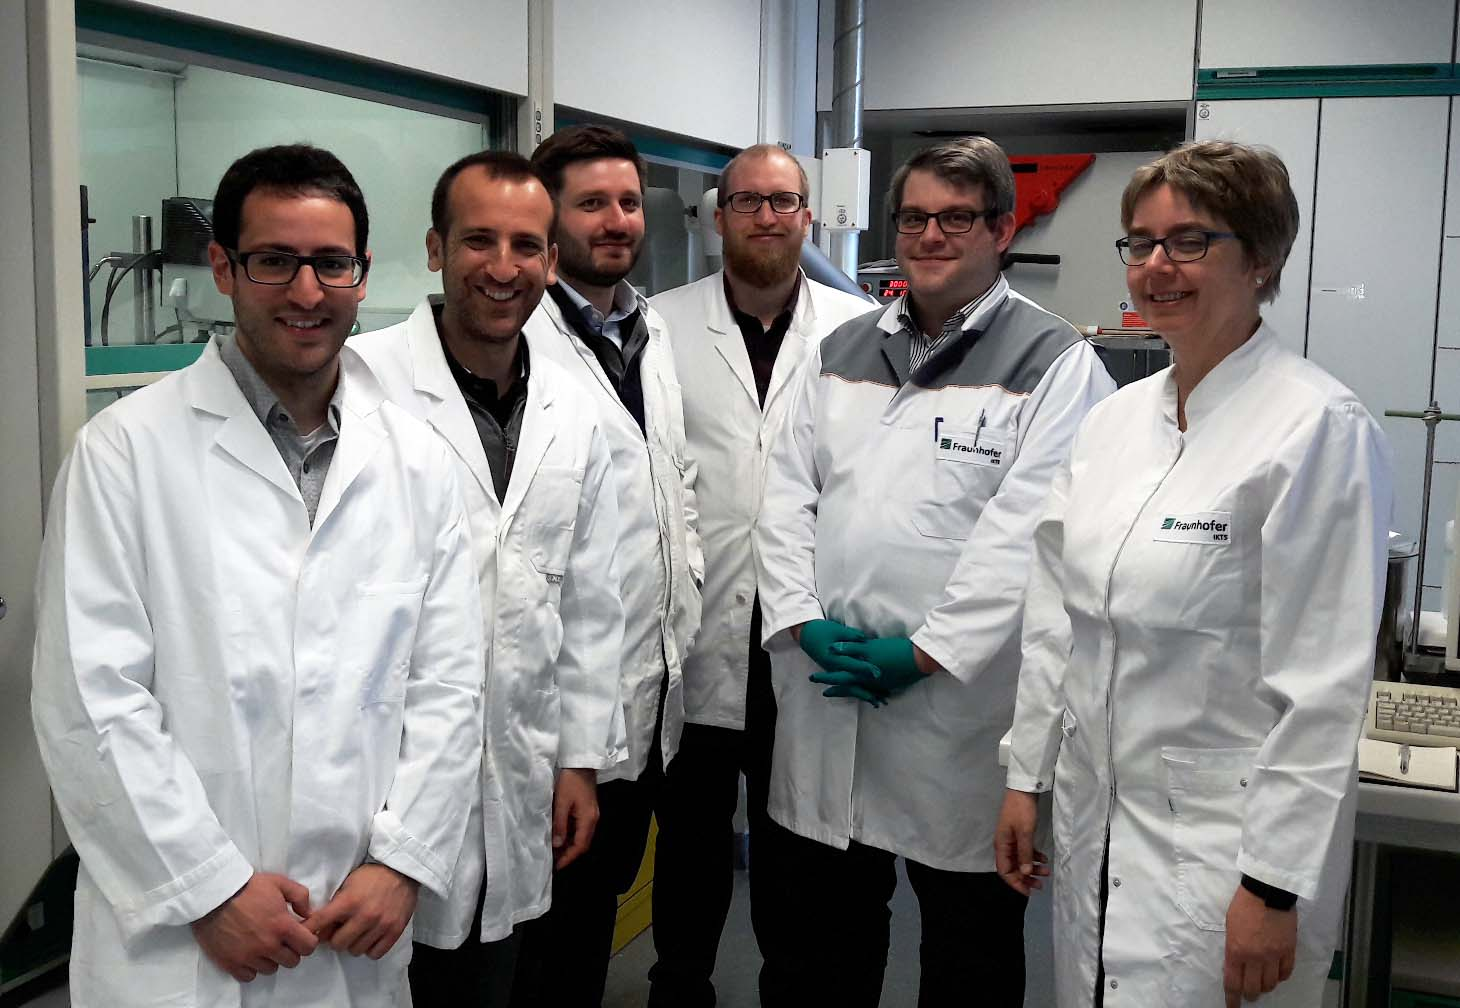 The team of the workshop